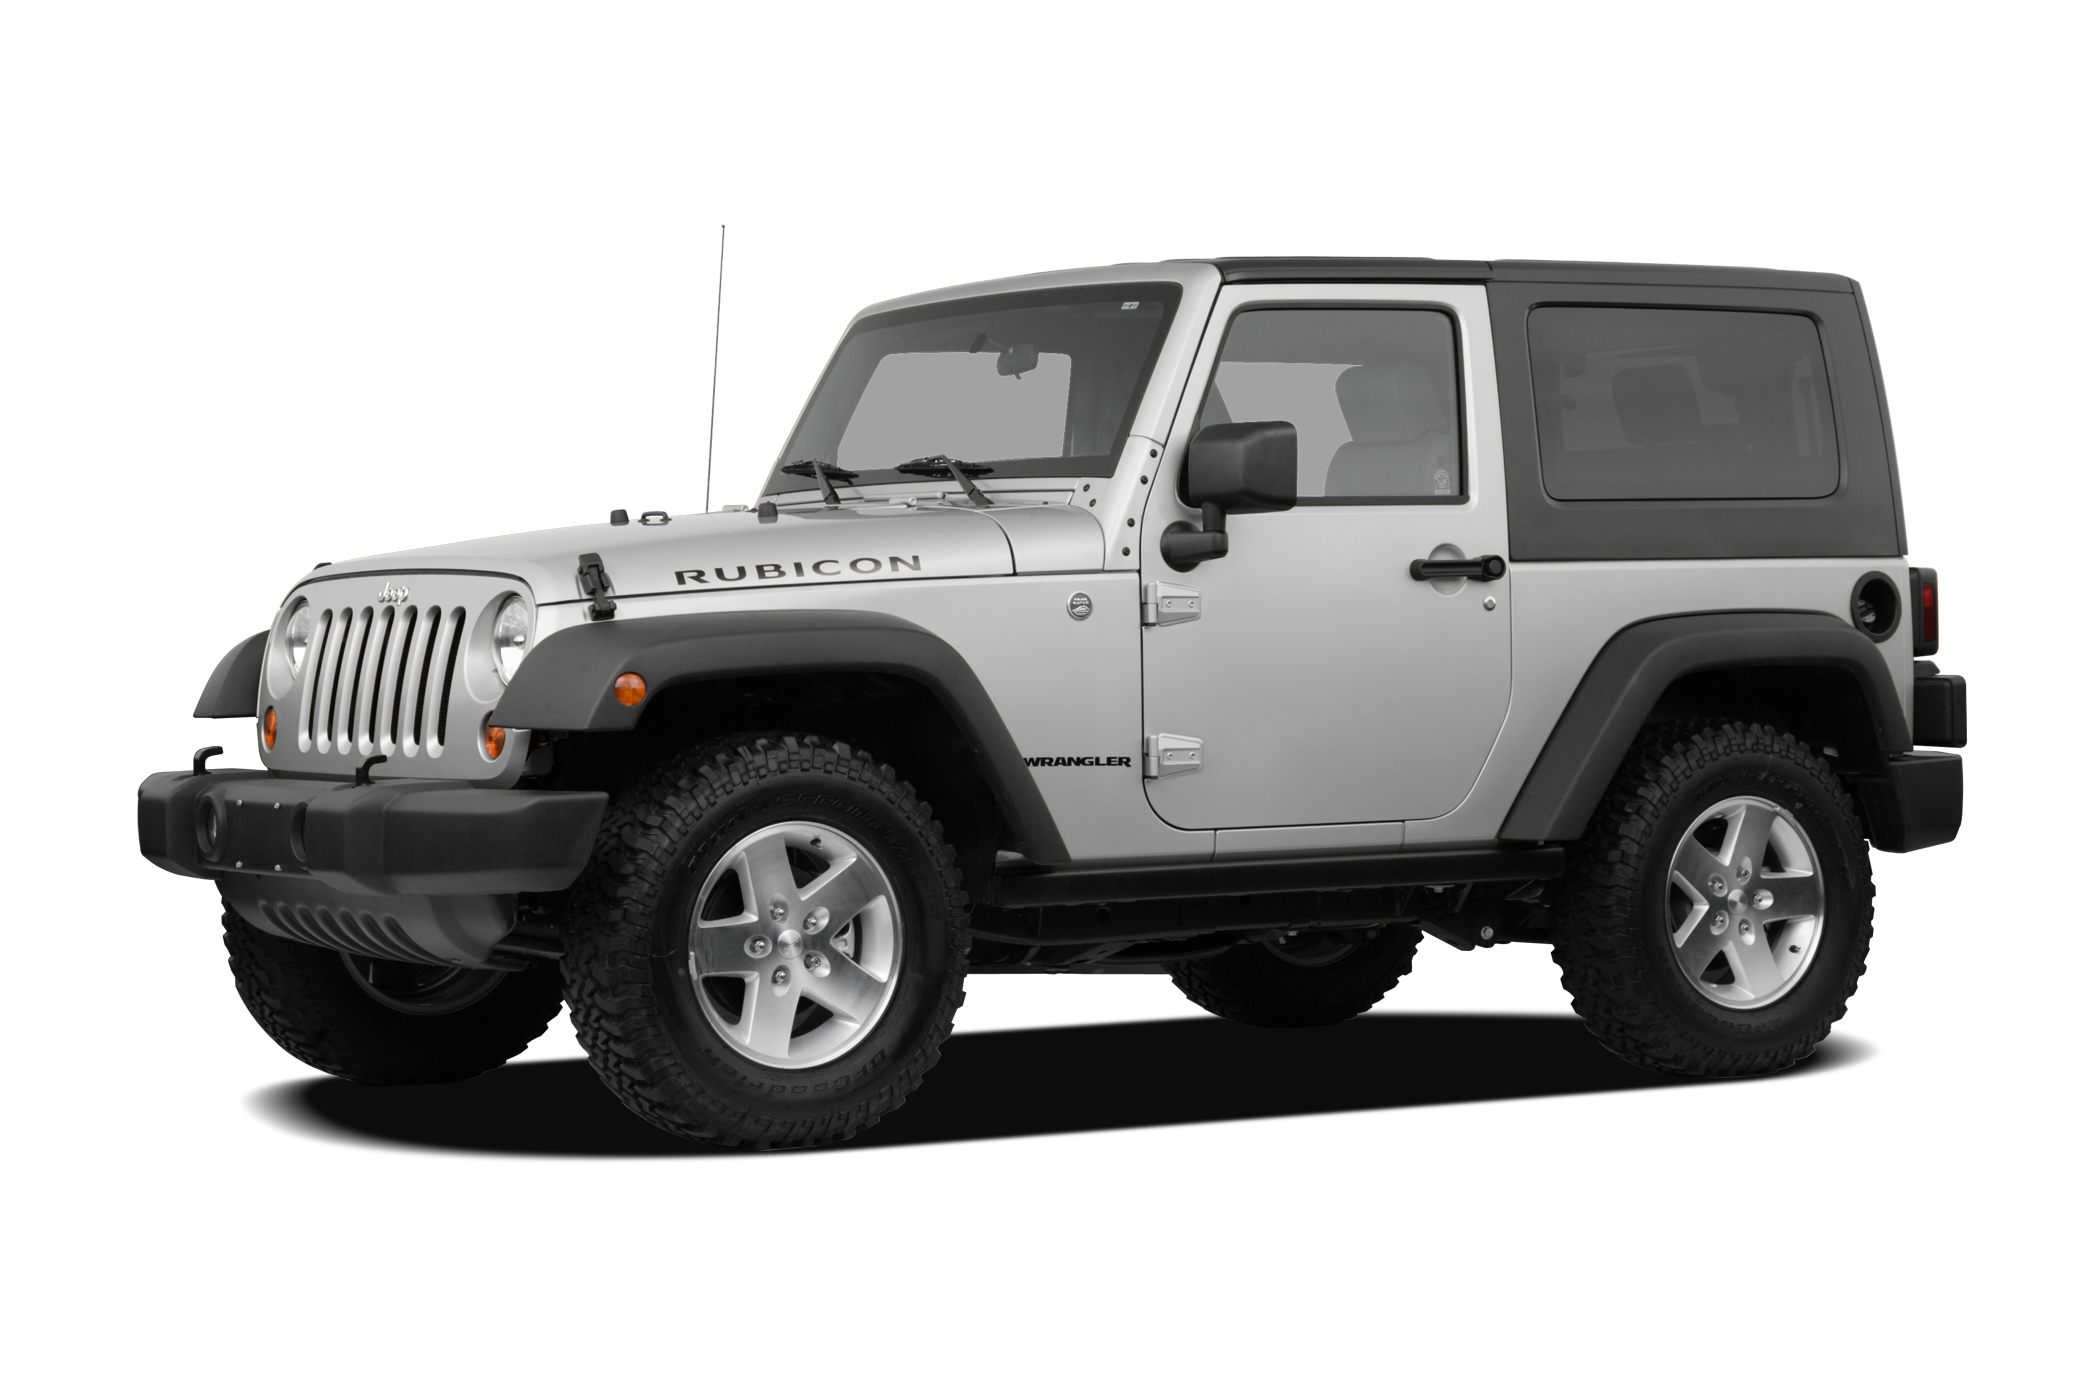 2010 Jeep Wrangler Sport SUV for sale in Bakersfield for $23,995 with 50,940 miles